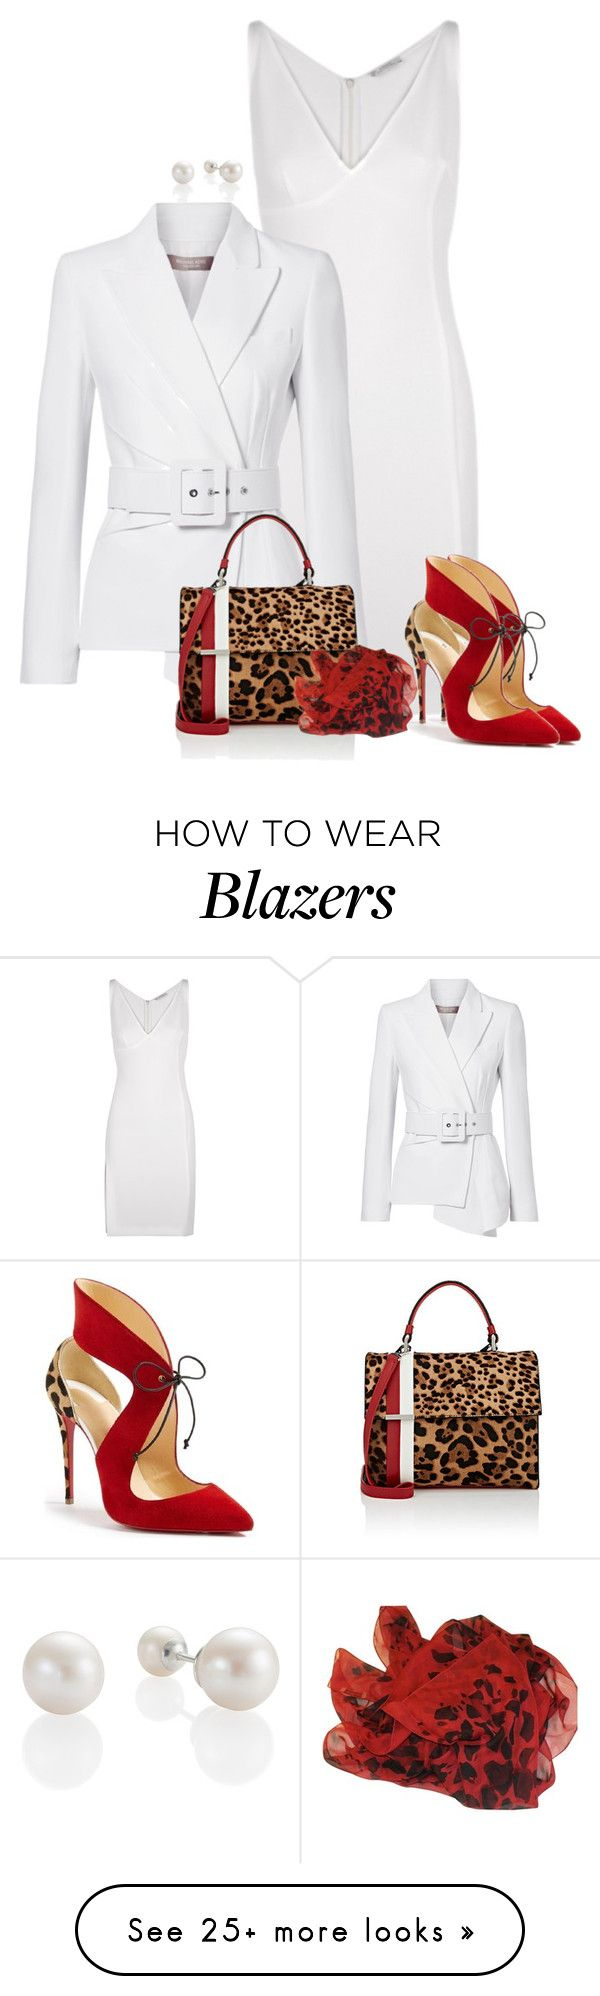 """""""Leopard #3"""" by kimzarad1 on Polyvore featuring Versace, Michael Kors, Tomasini, Christian Louboutin and Burberry"""